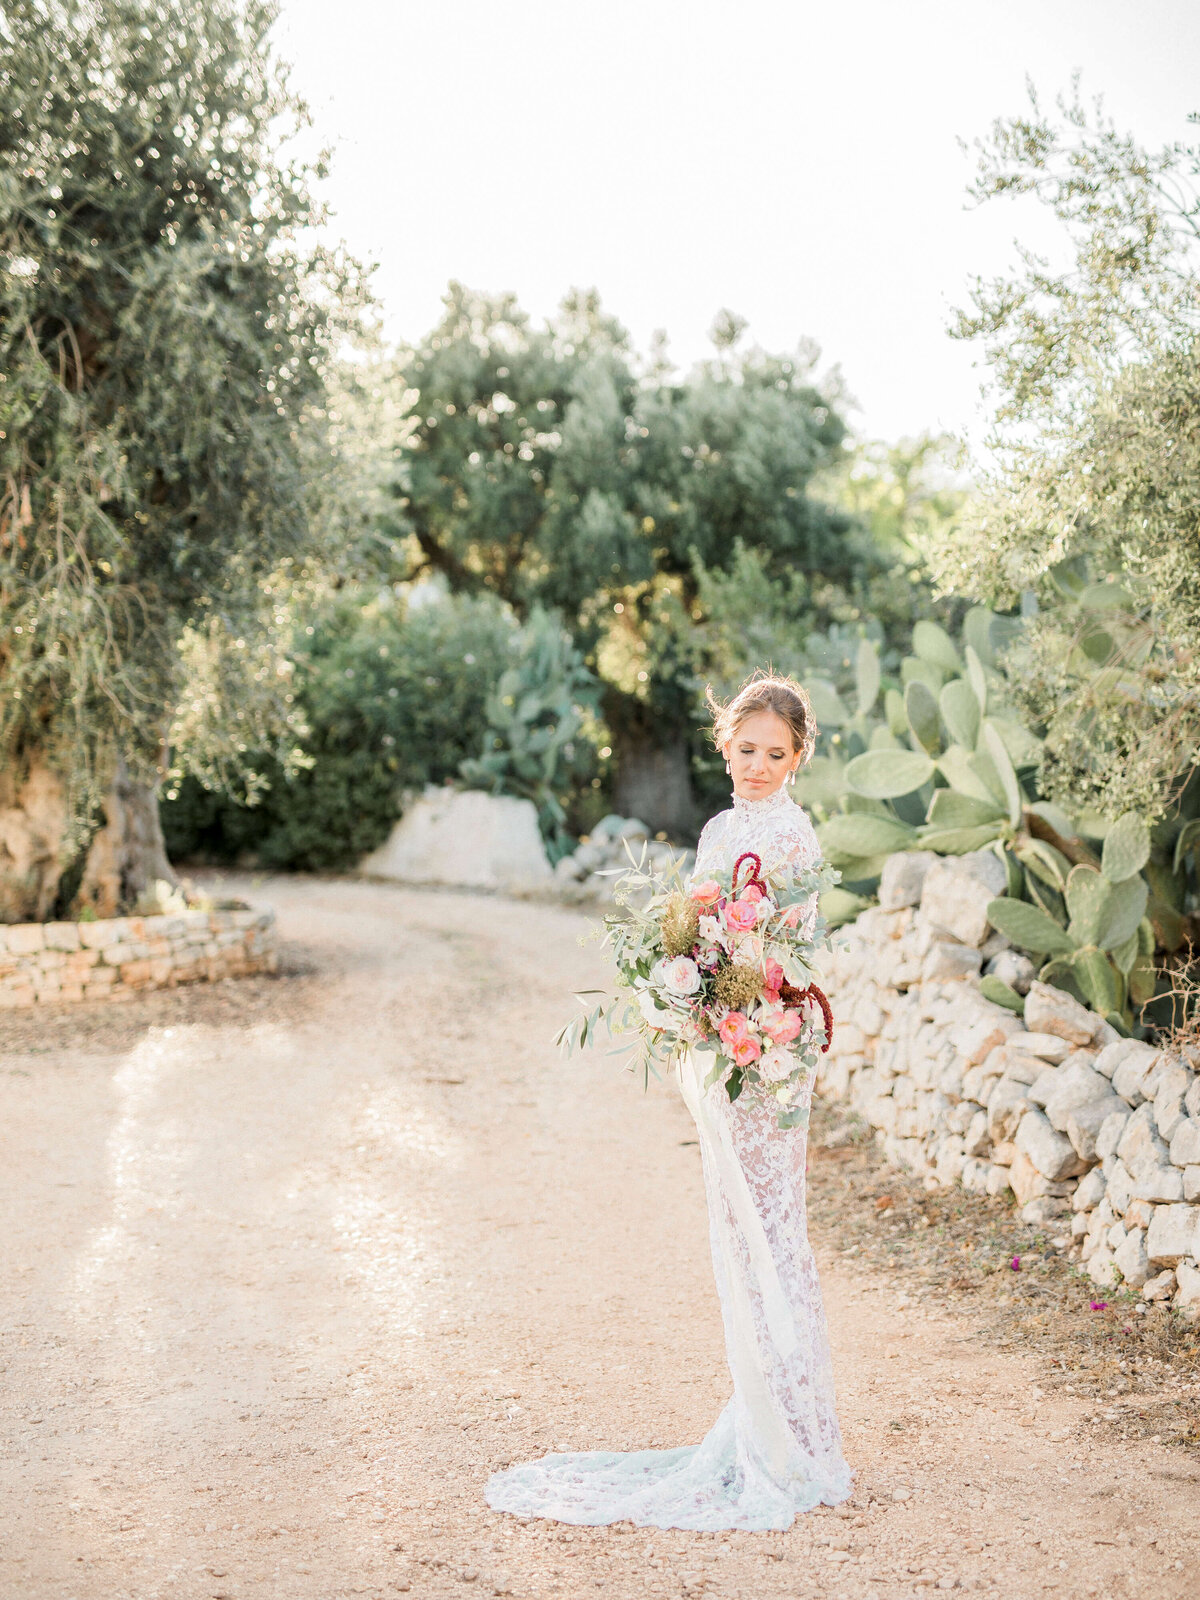 Styled Shoot - Honeymoon - Masseria - Puglia - Italy 0212